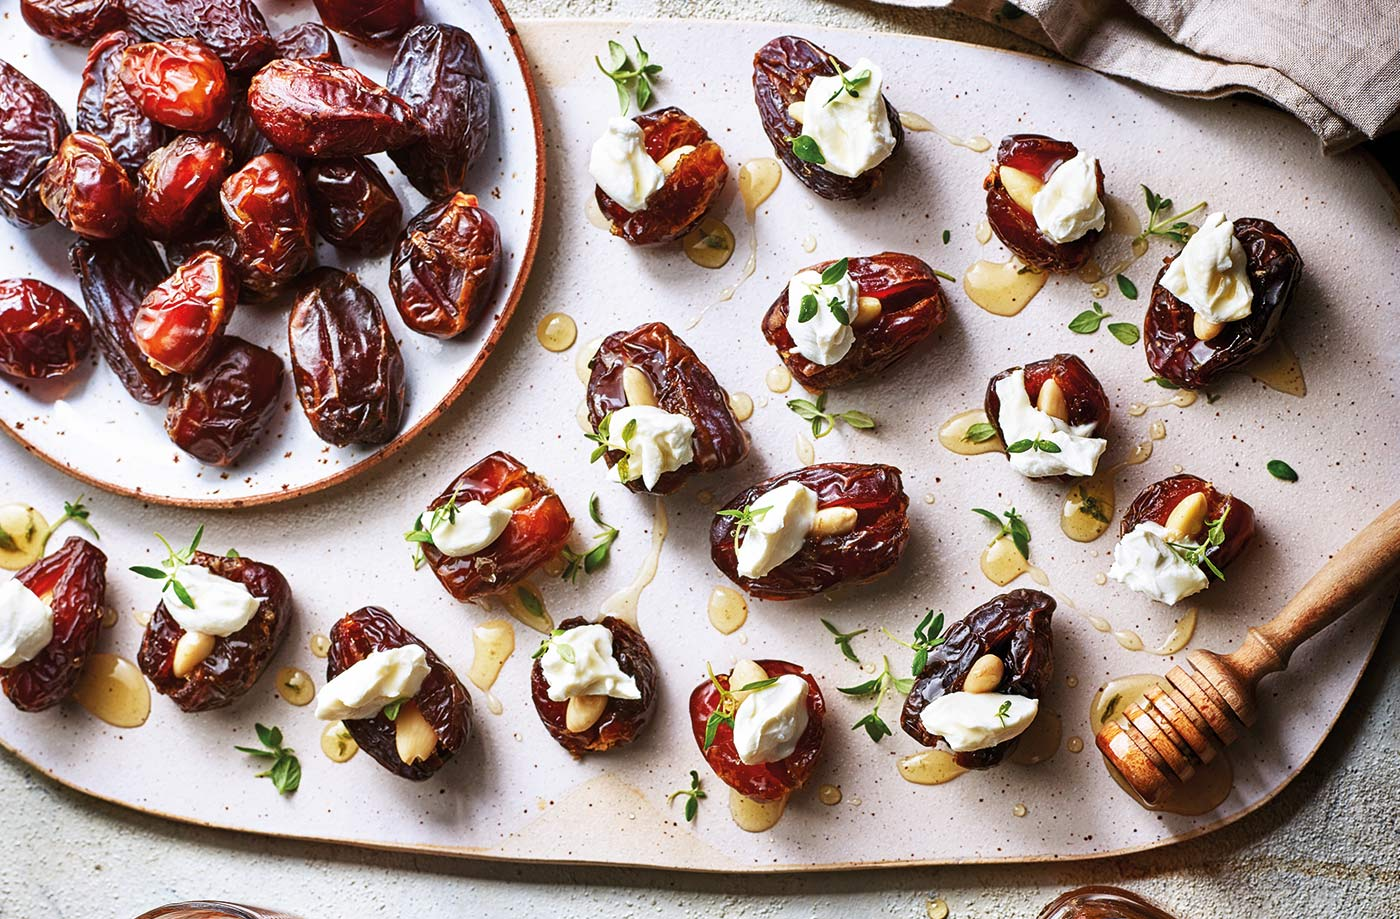 Stuffed dates with goat's cheese and almonds recipe